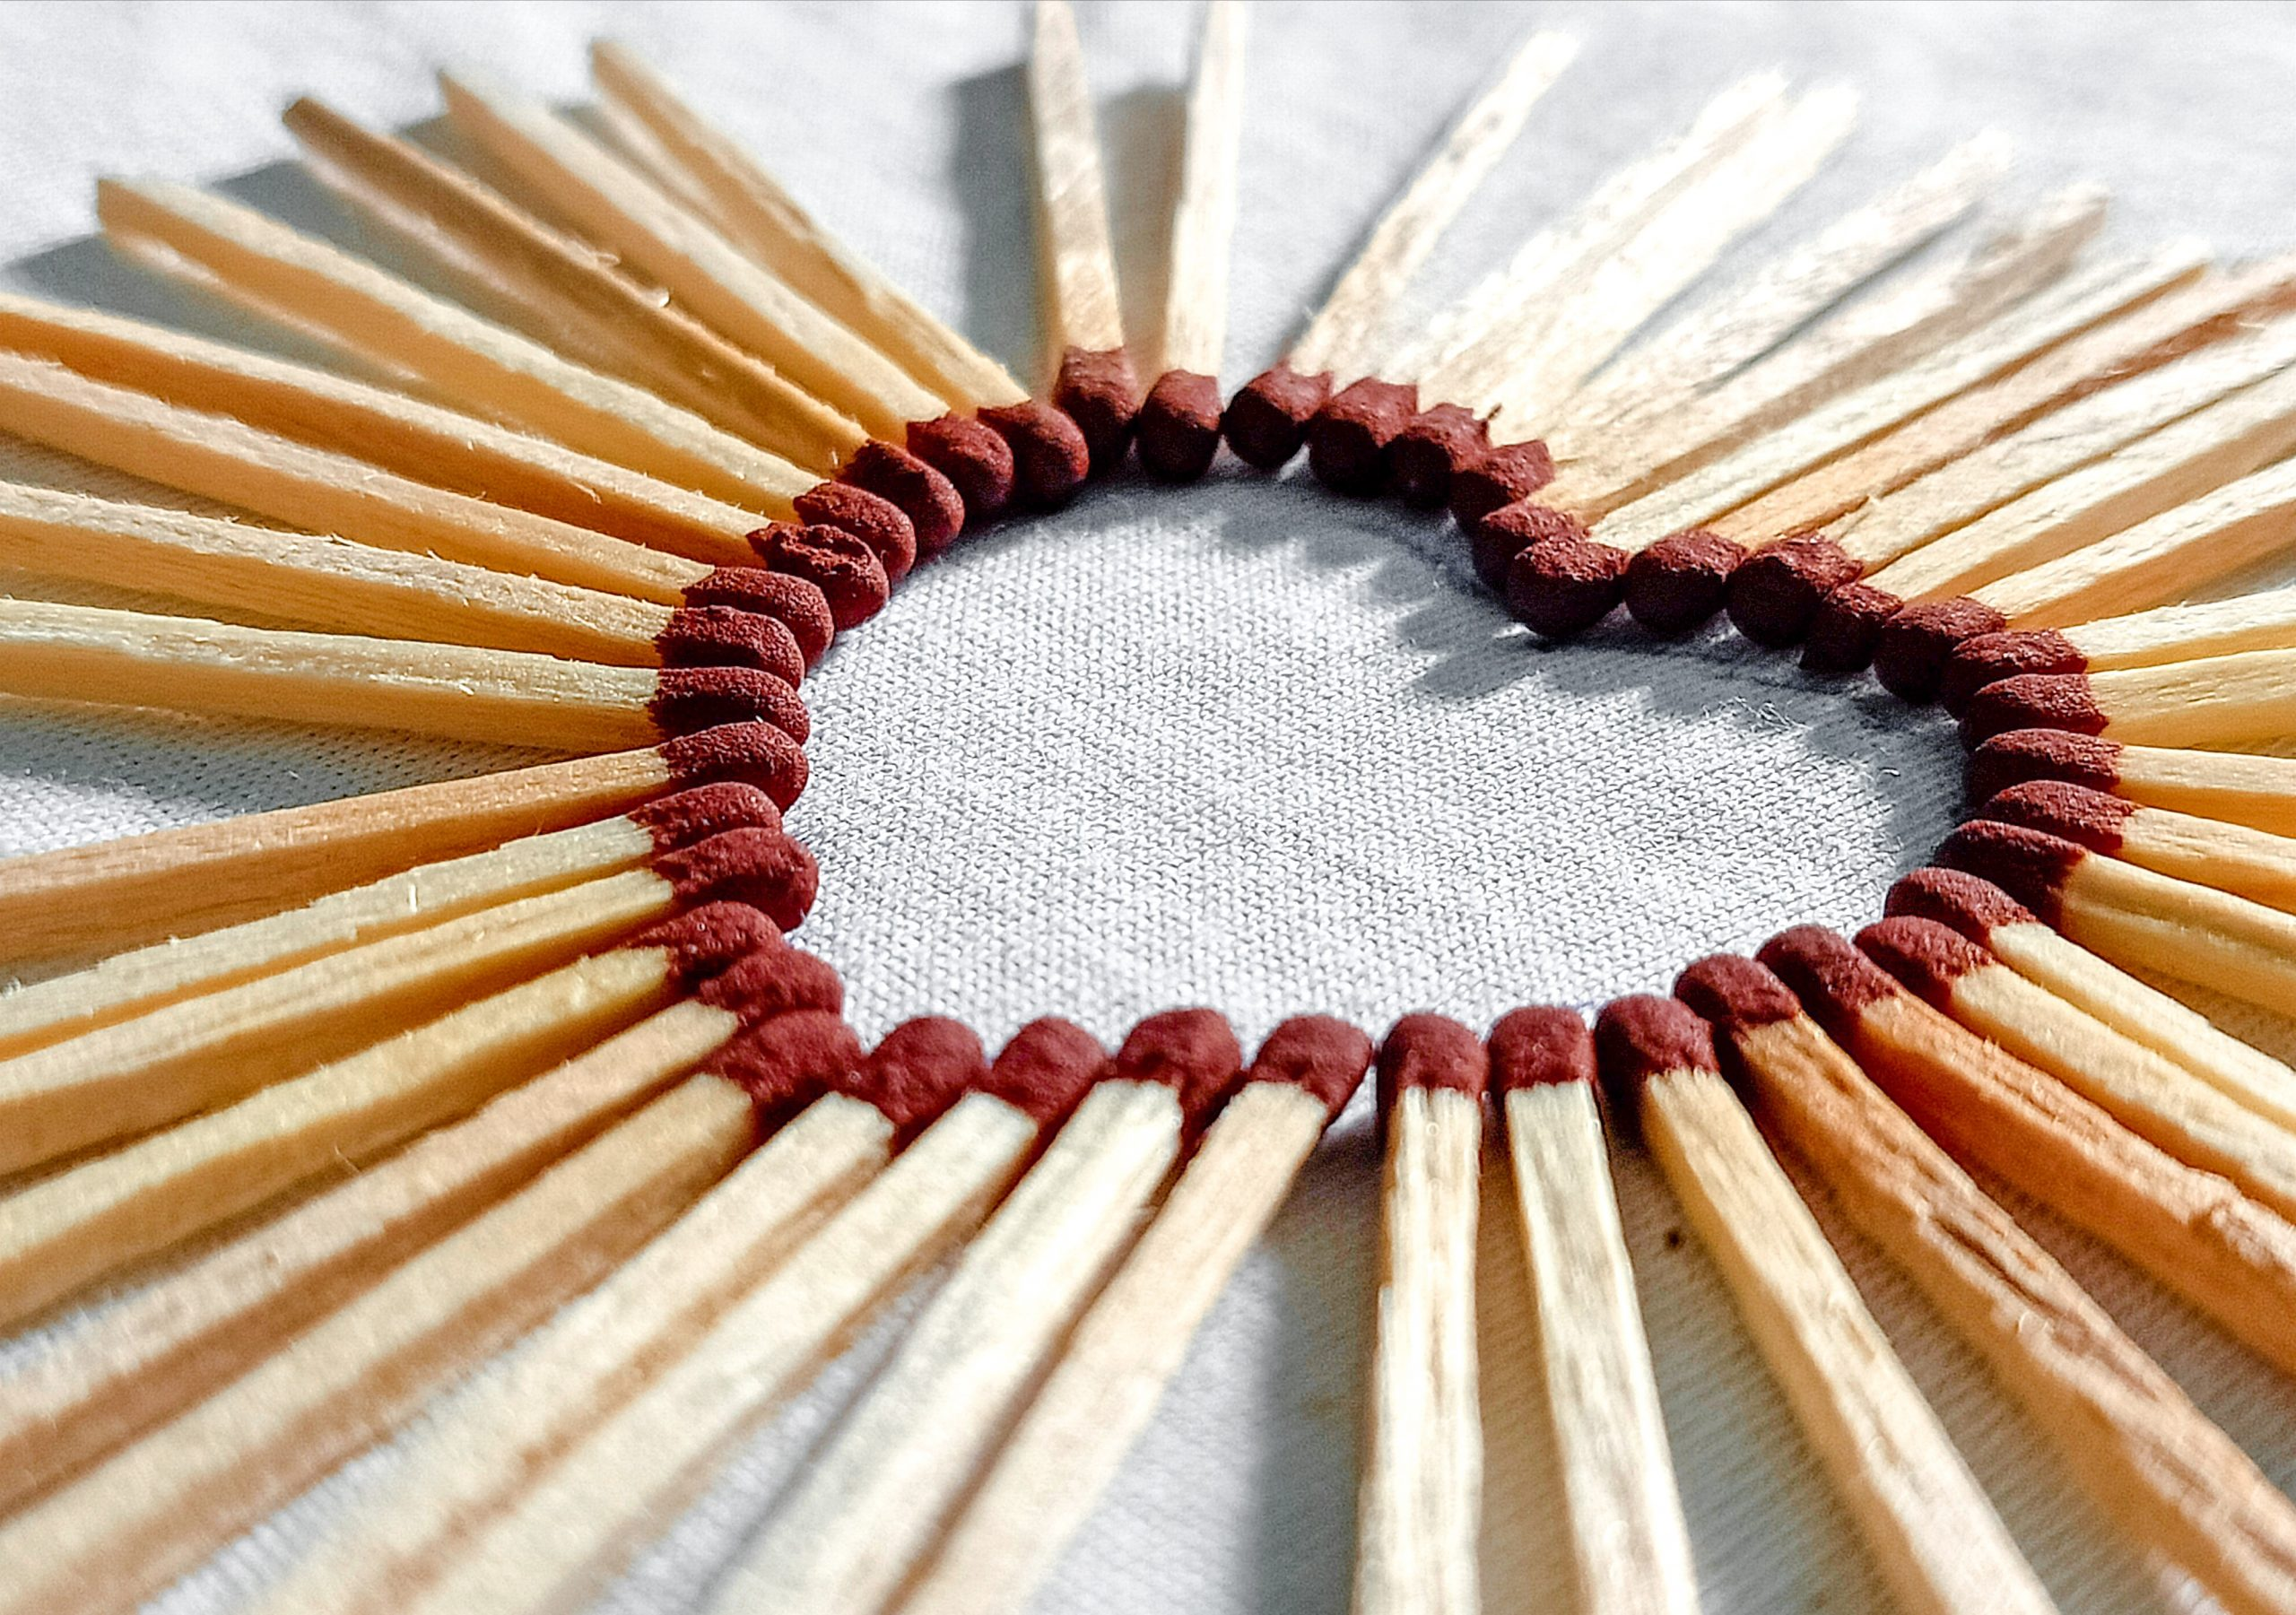 Heart shape made with matchsticks